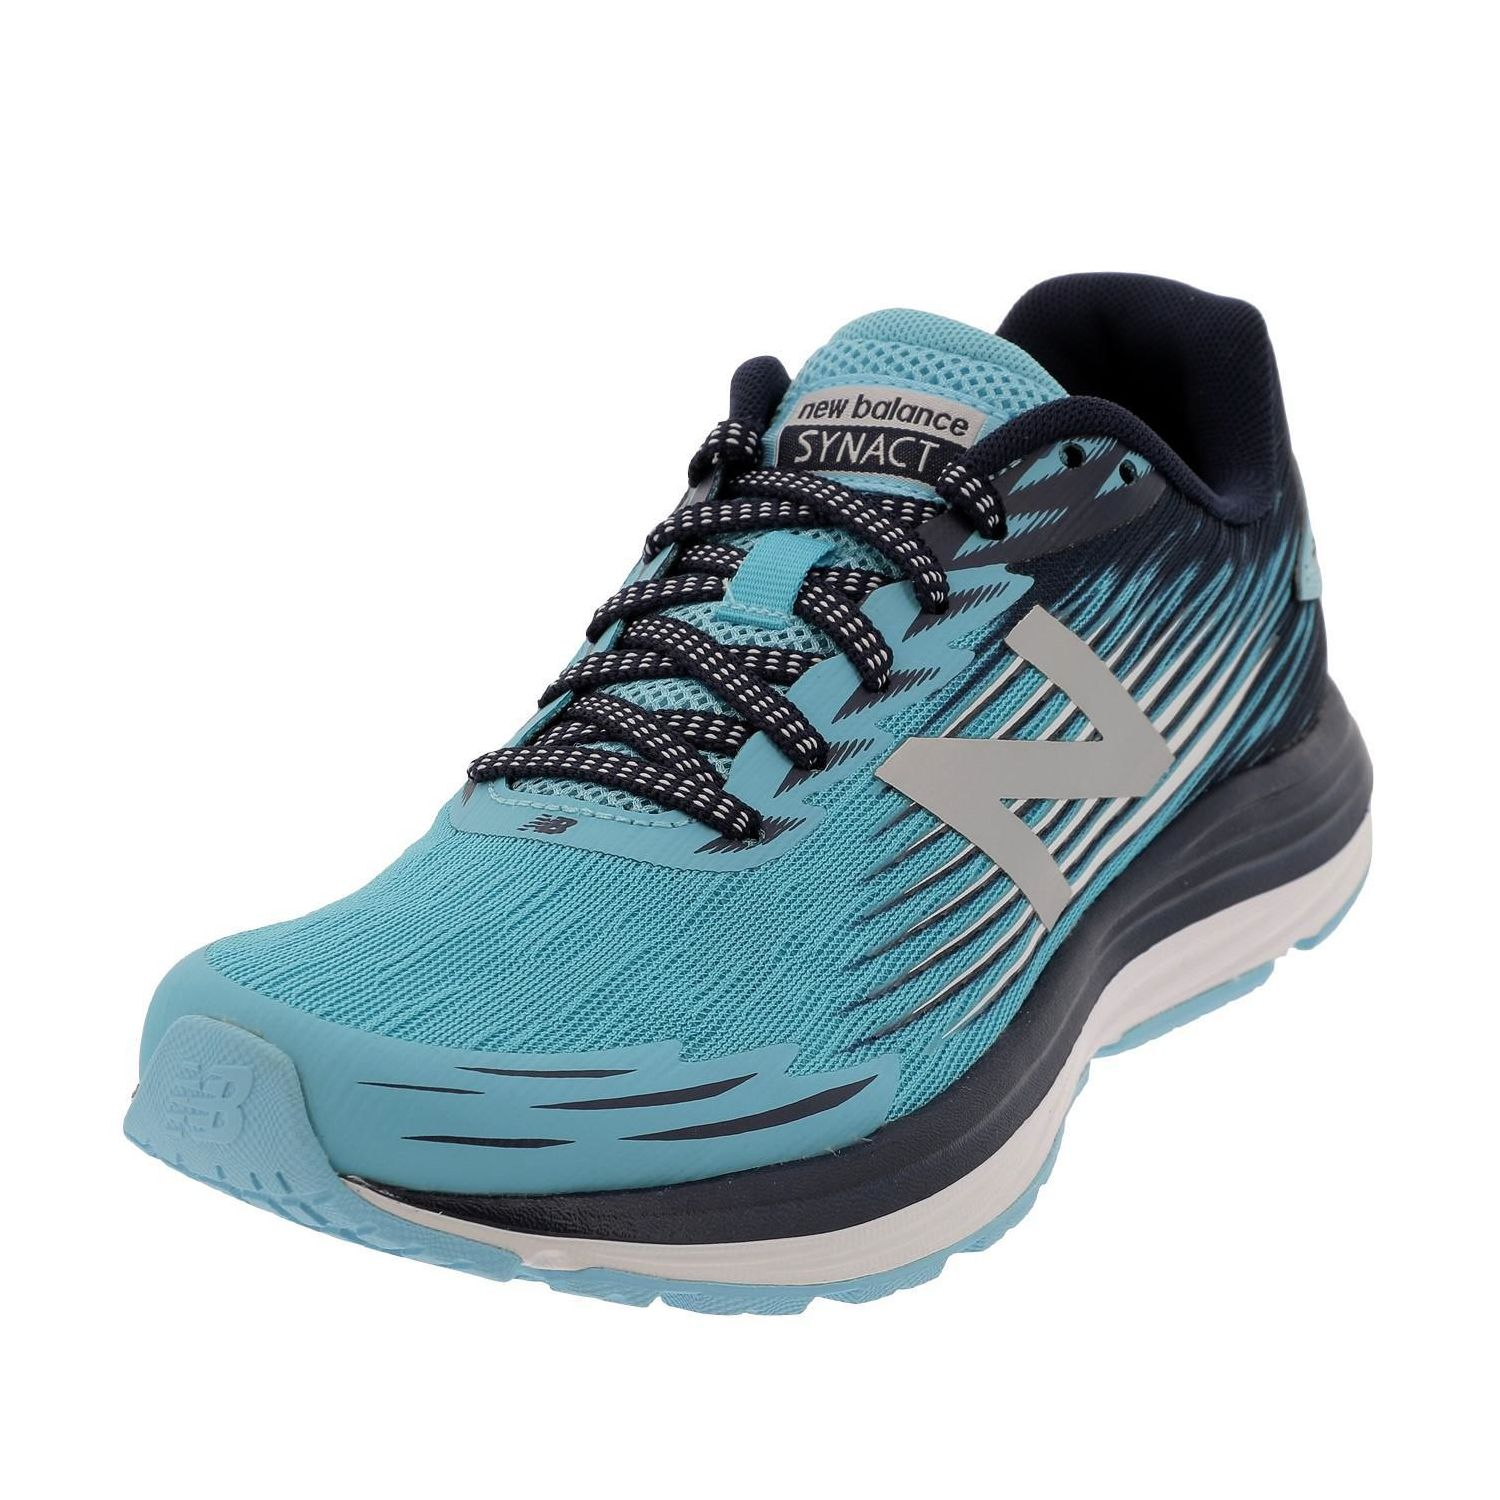 New Balance - Chaussures running Synact w ruuning pro Bleu 38915 - pas cher Achat / Vente Chaussures running